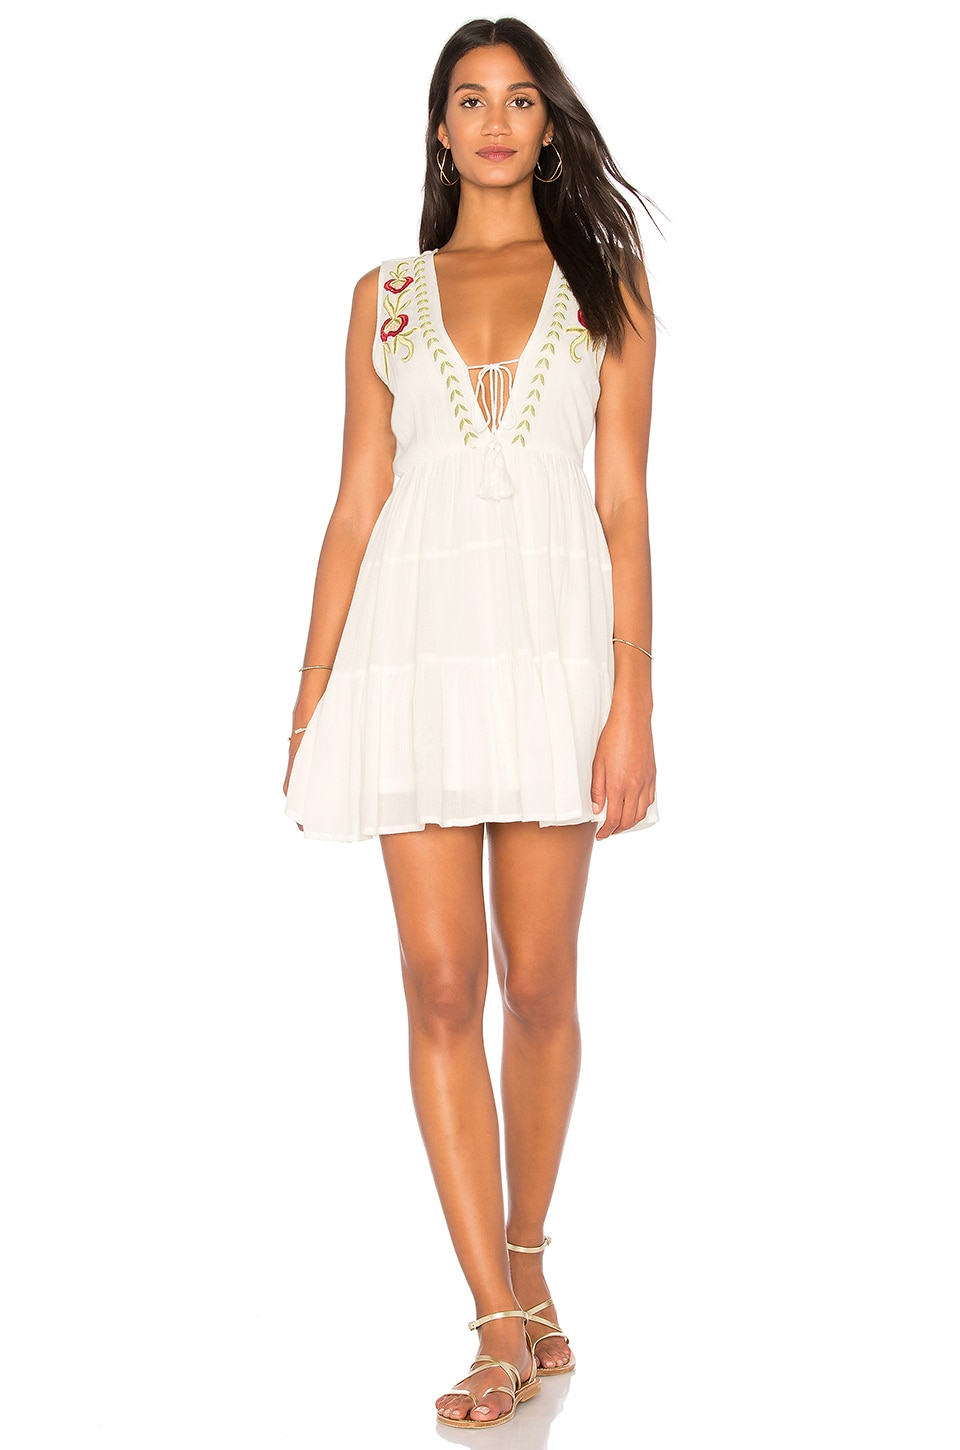 Embroidered Babydoll Dress by Band of Gypsies